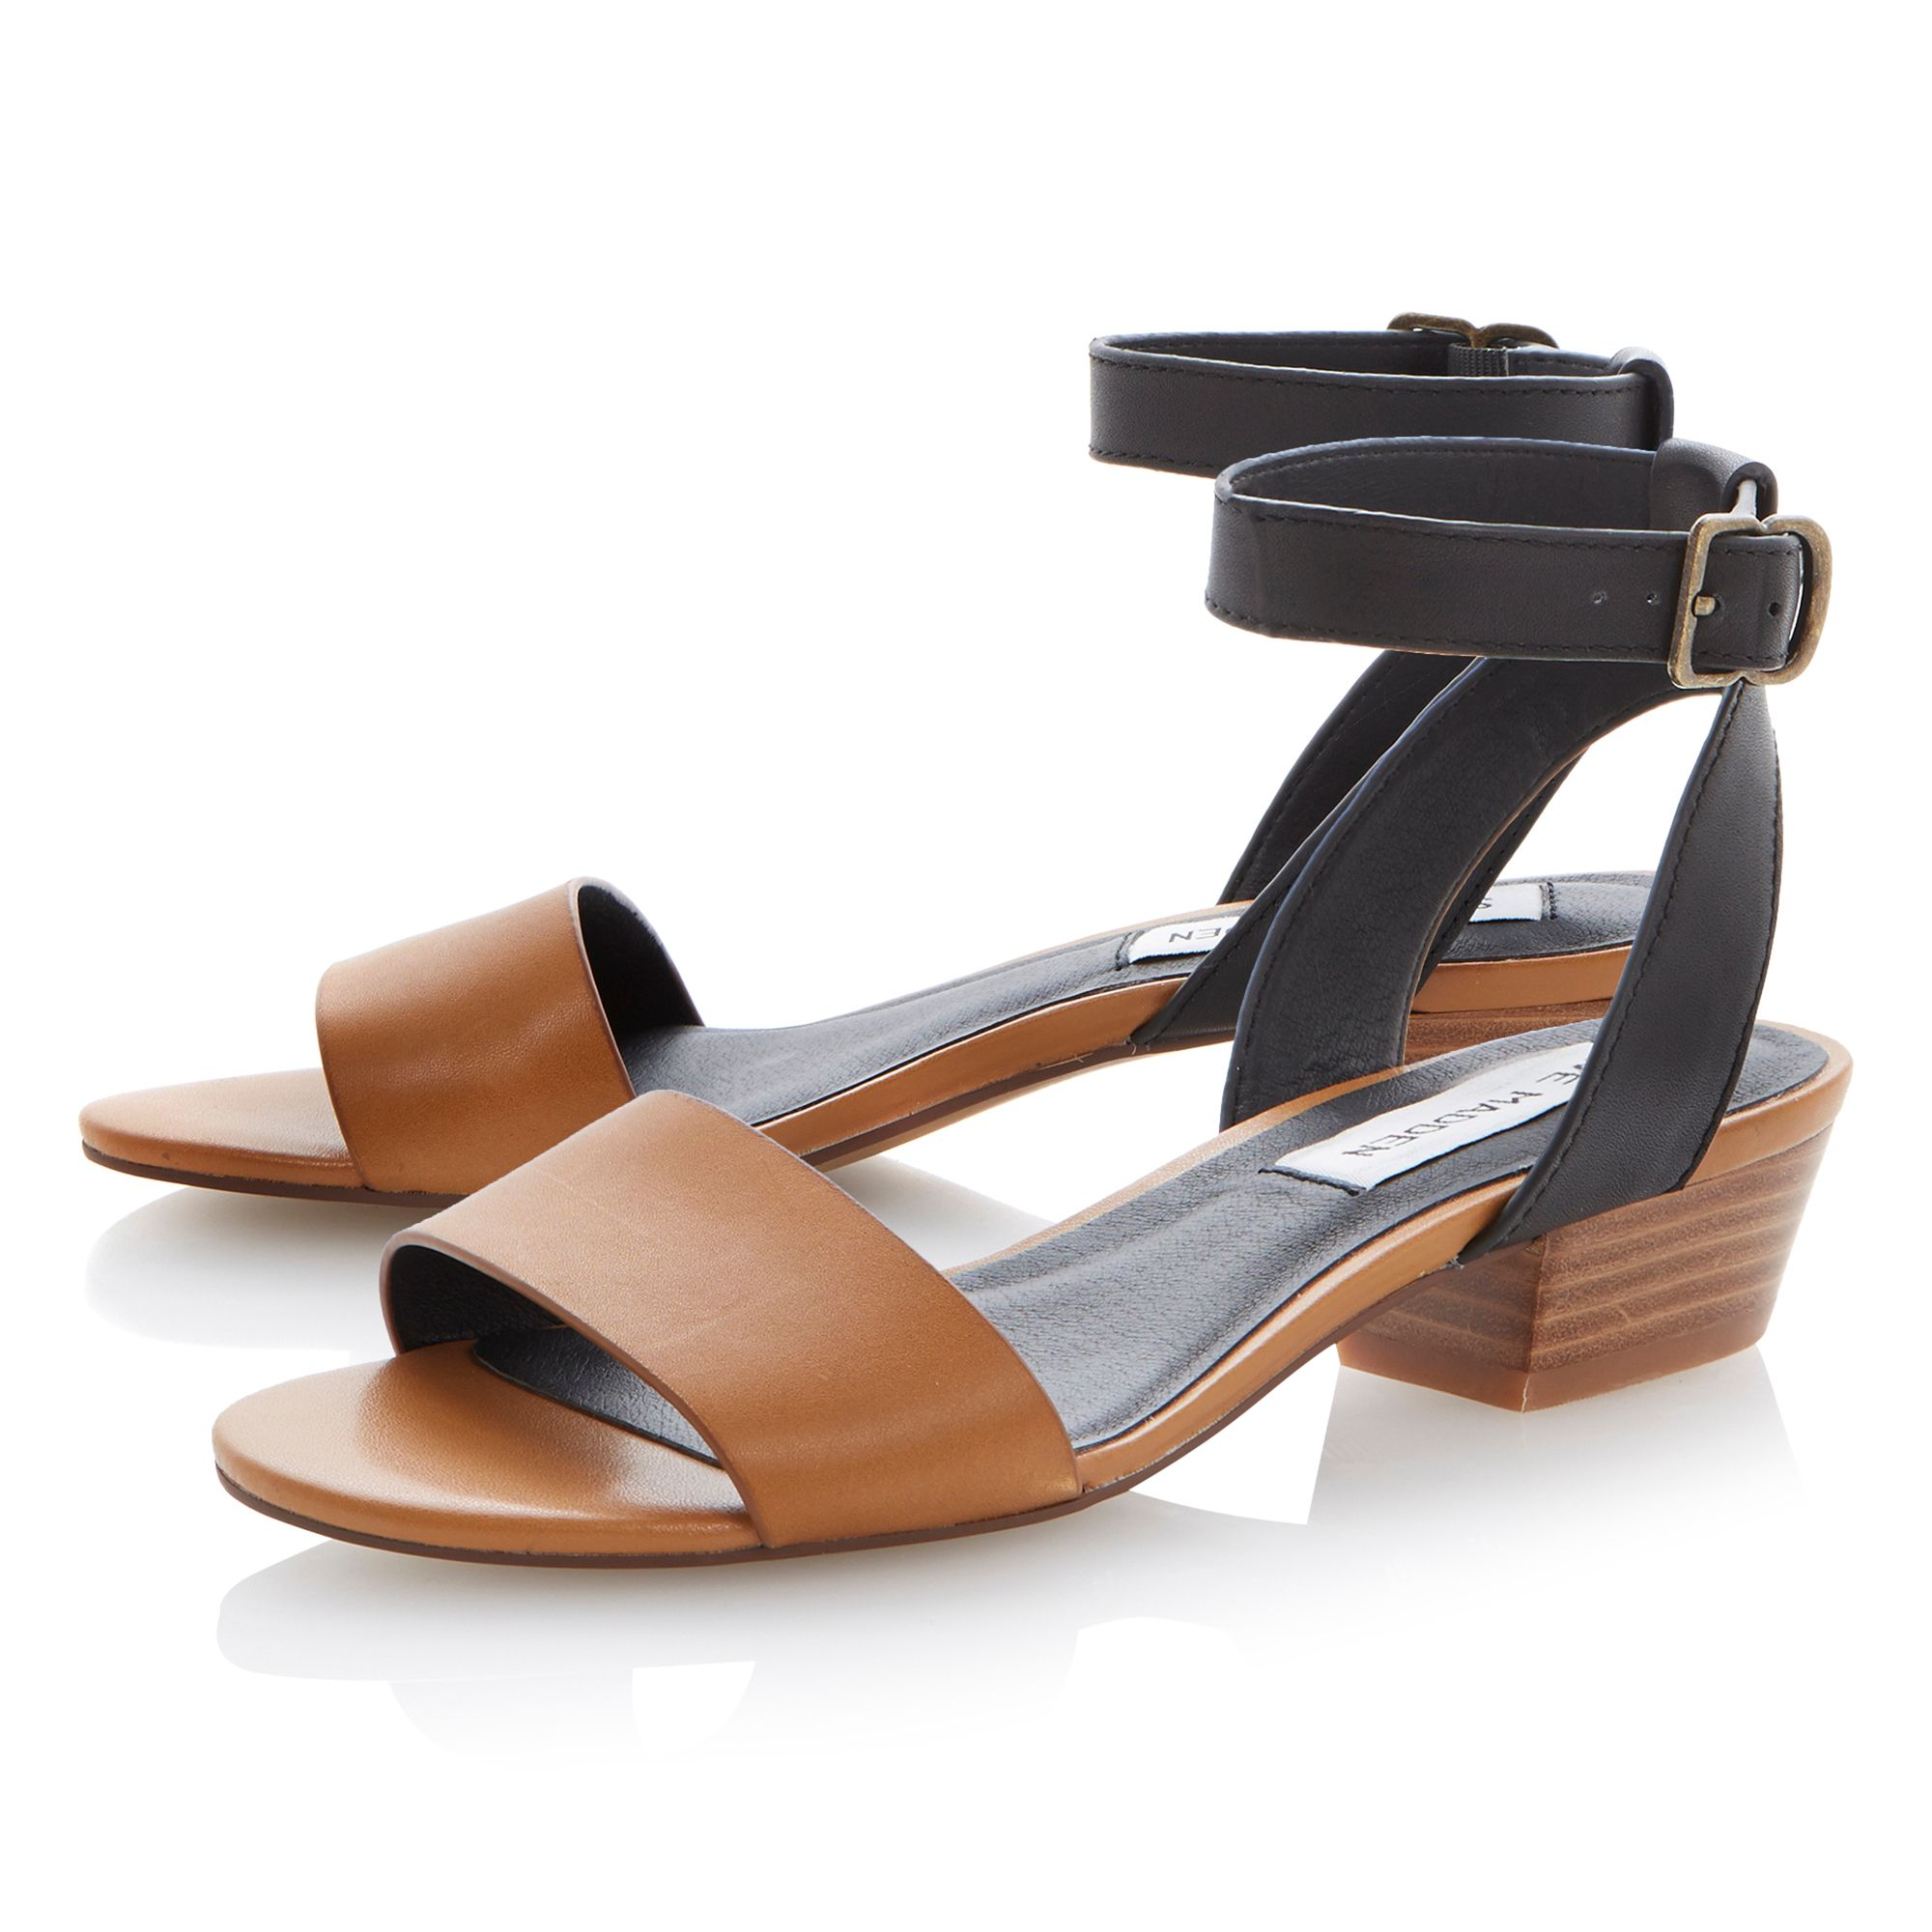 Terrance leather block heel sandals